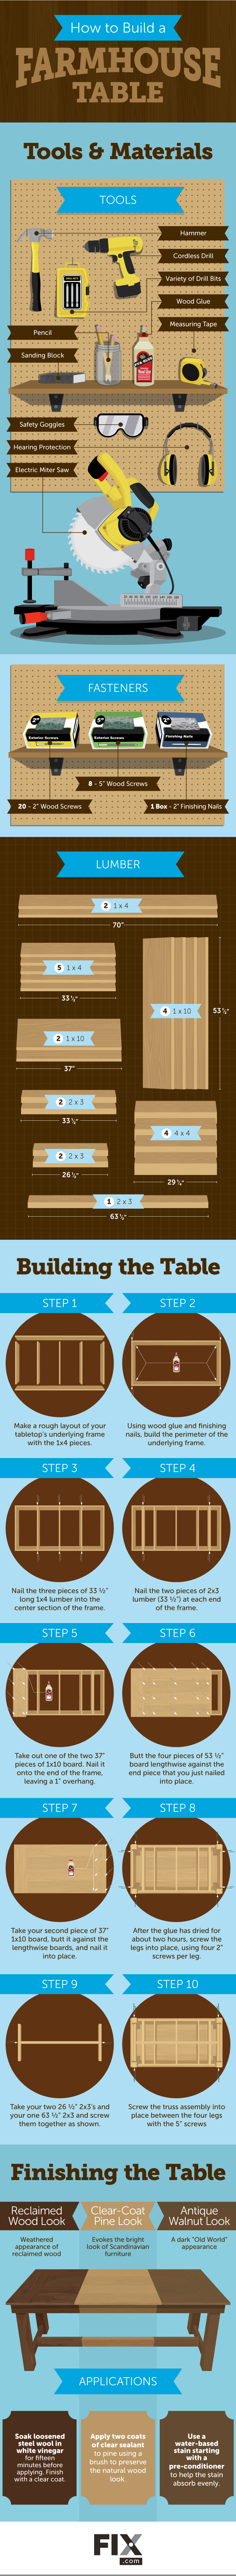 How to Build a Farmhouse Table #infographic